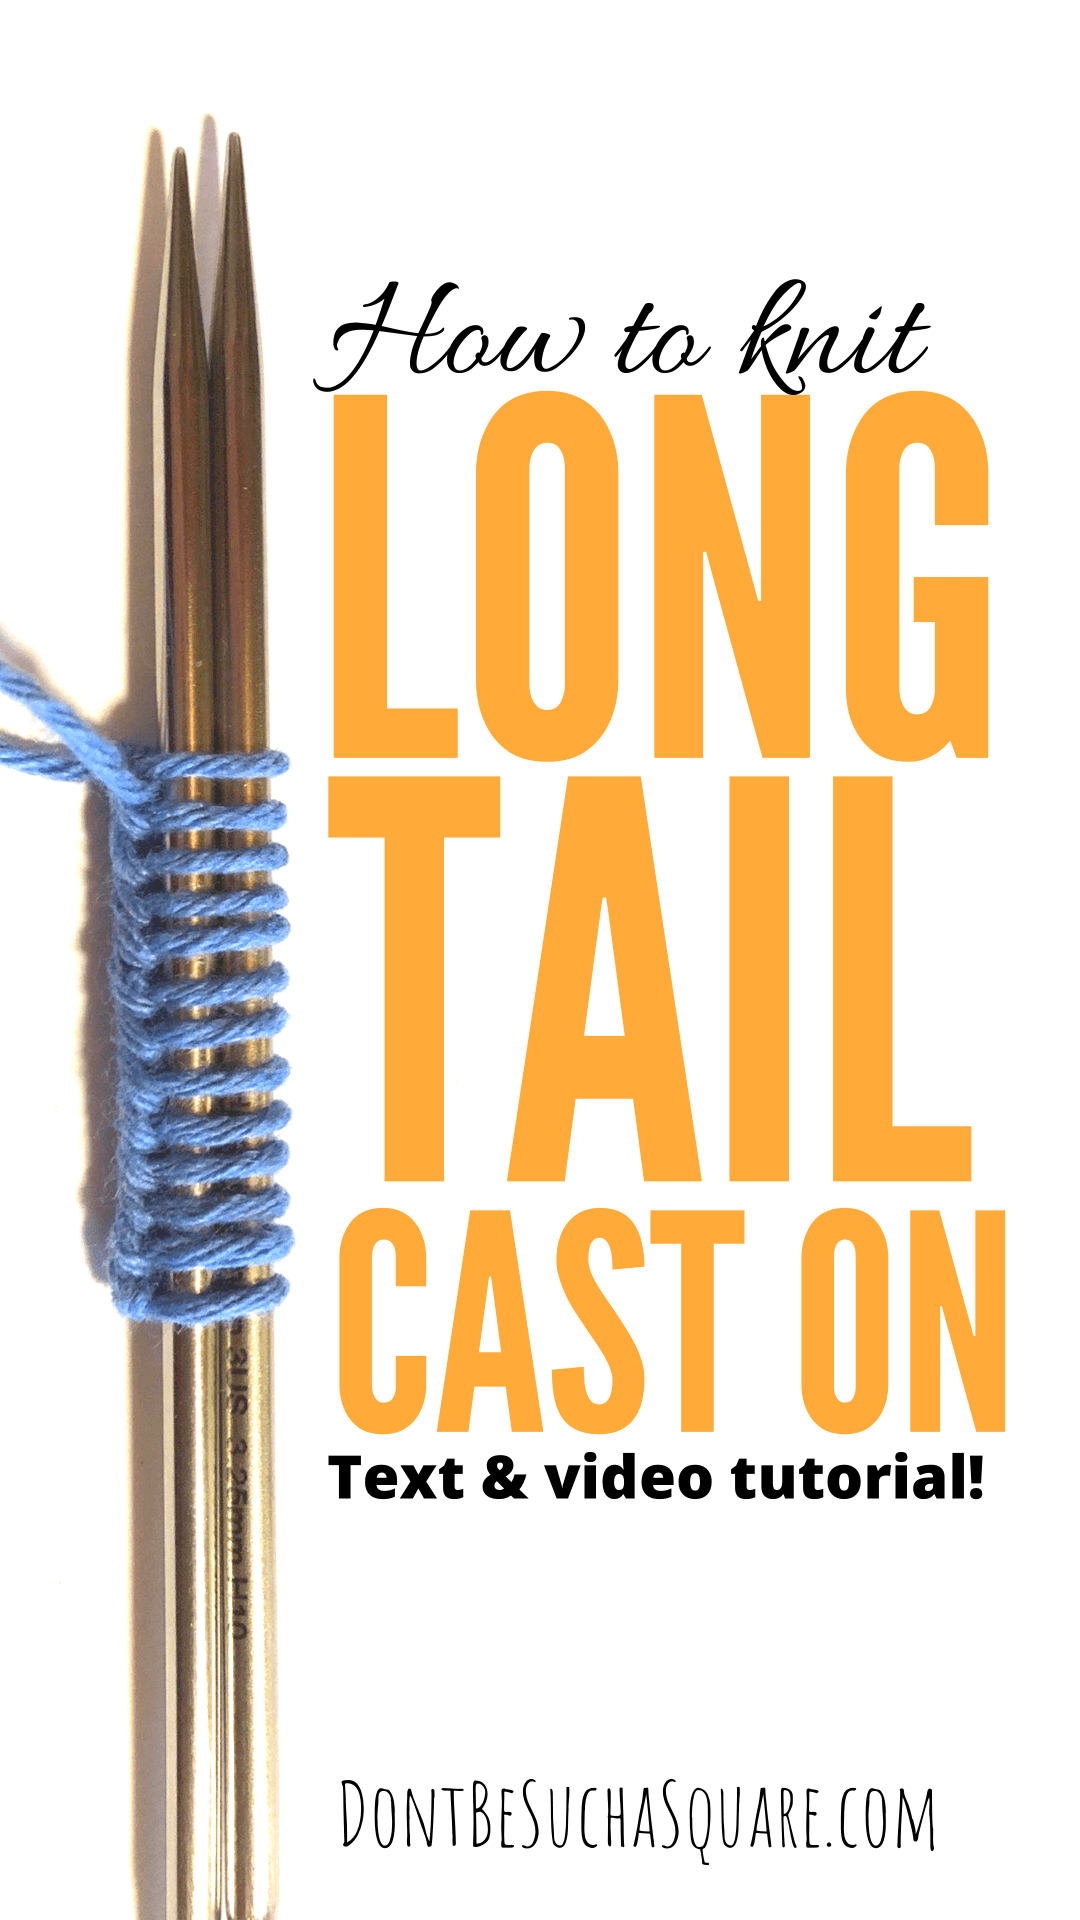 how to knit long tail cast on text and video tutorial